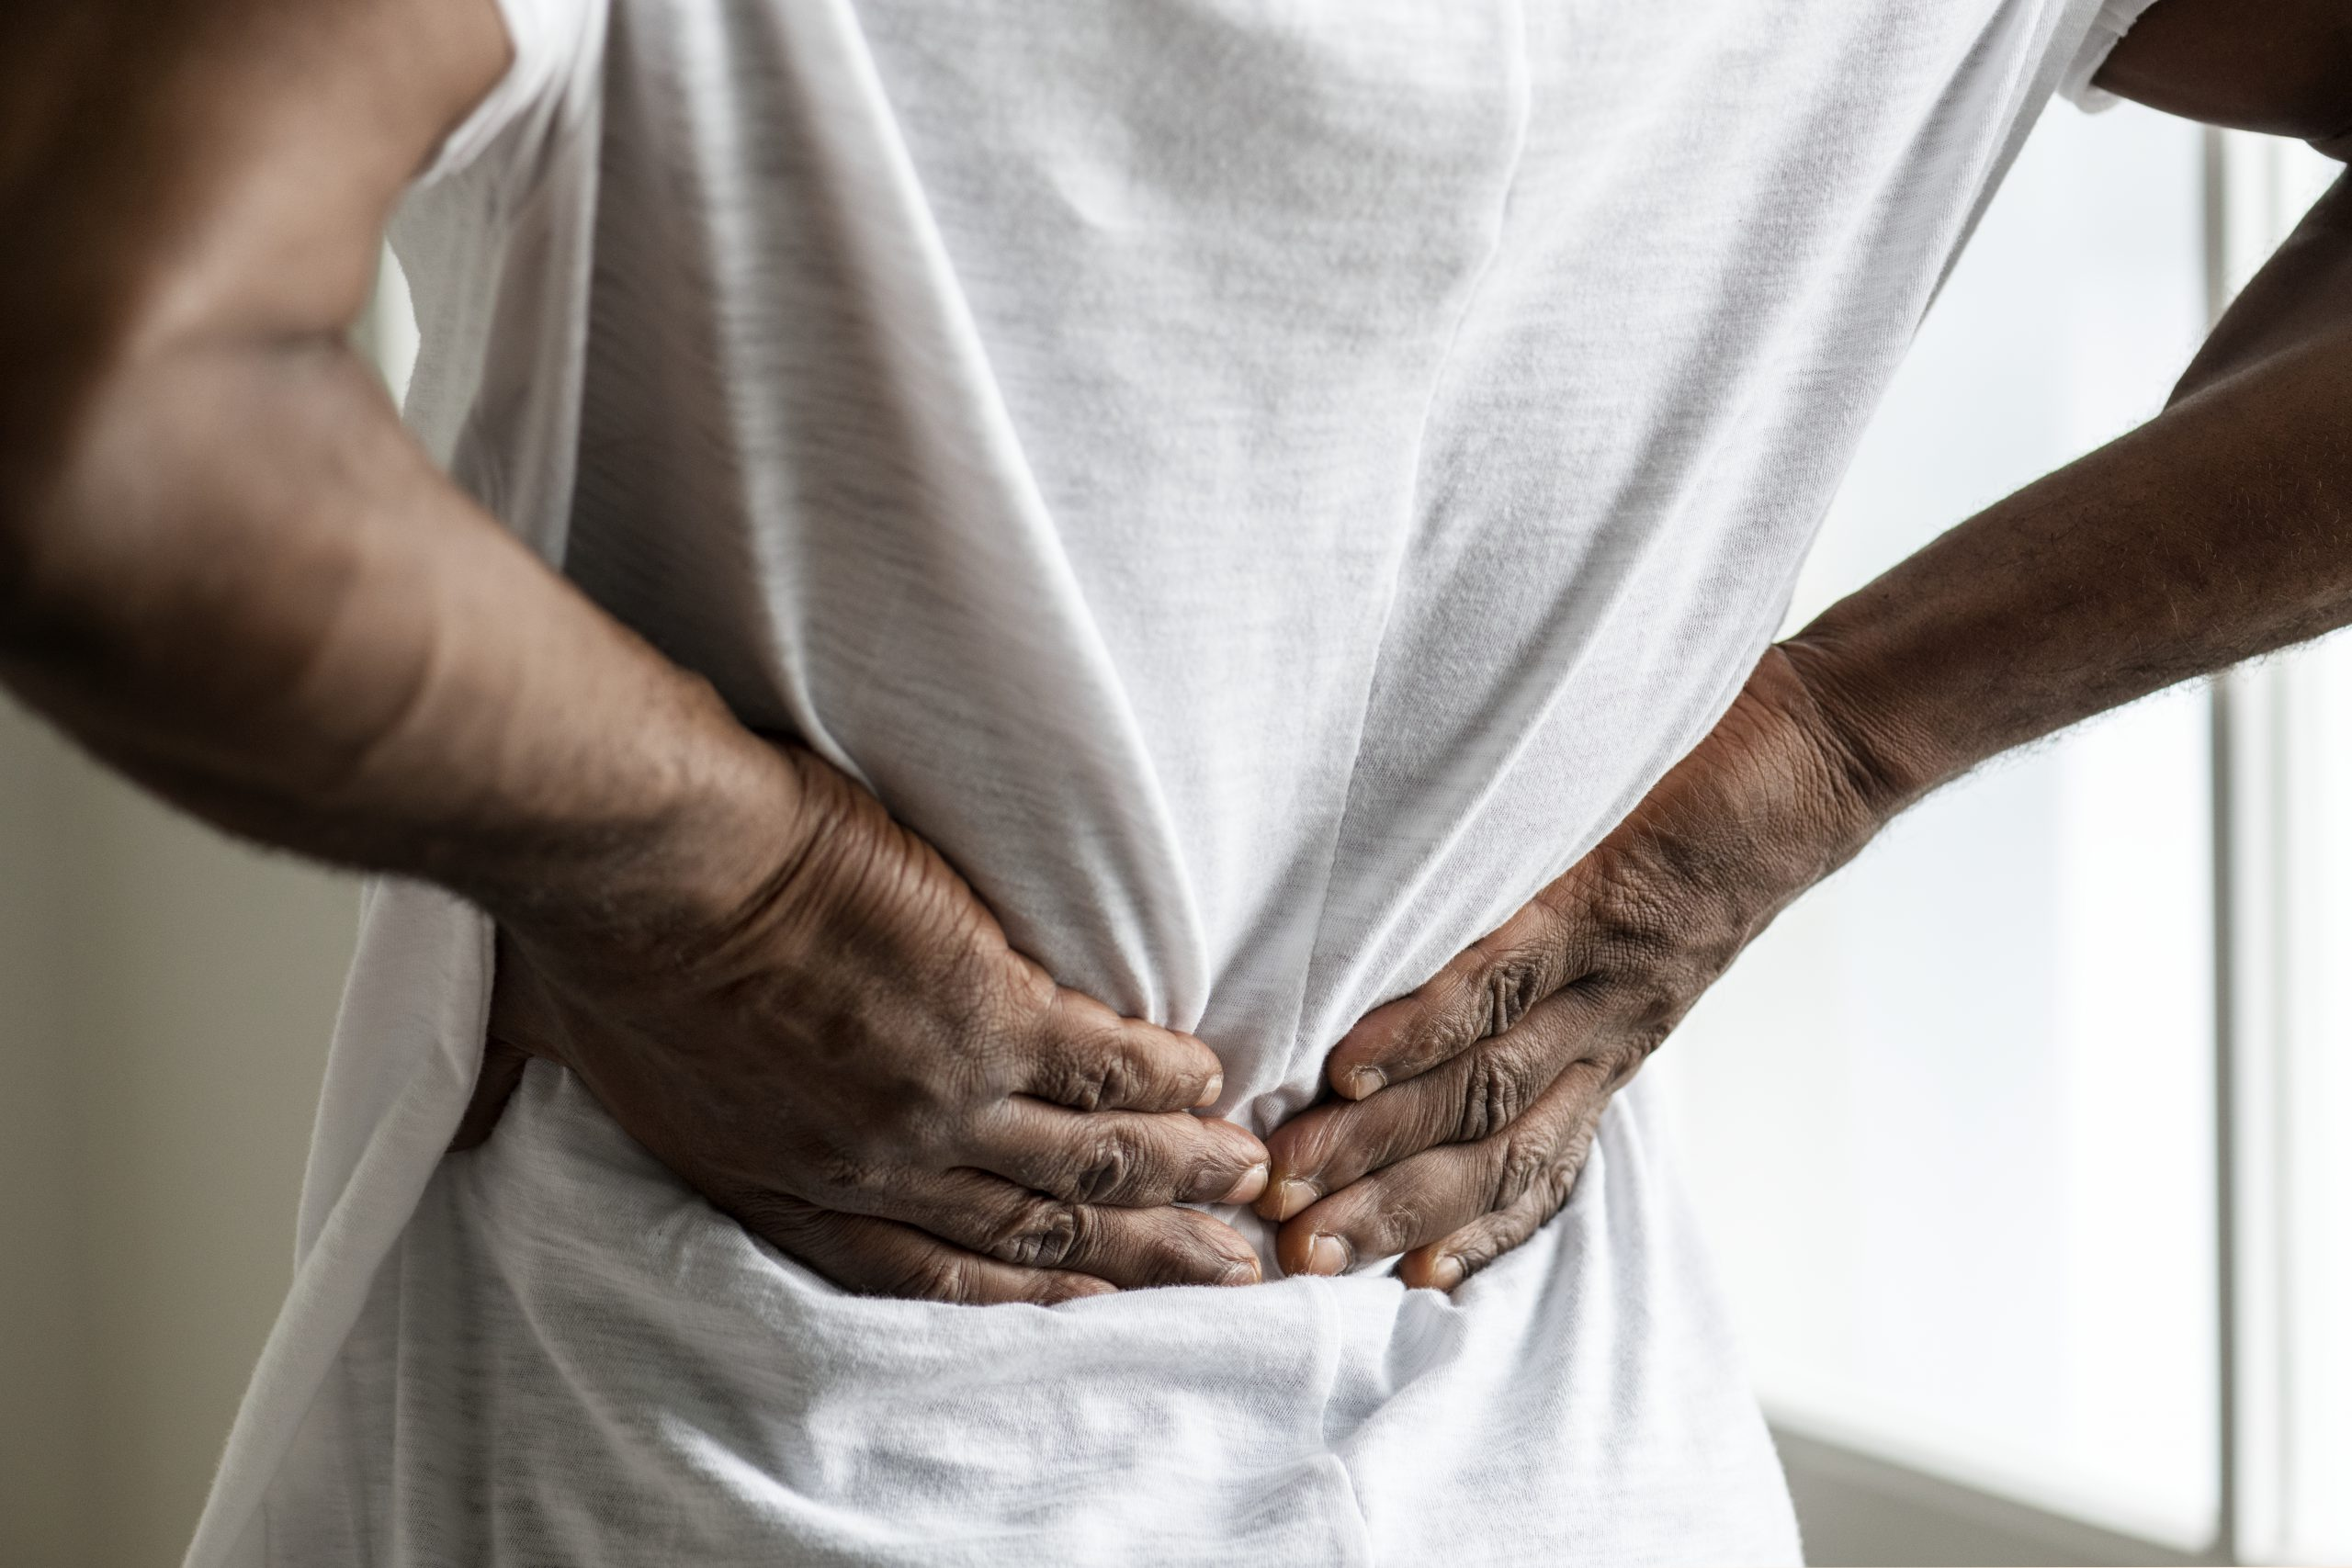 Black man from behind with hands on back in pain